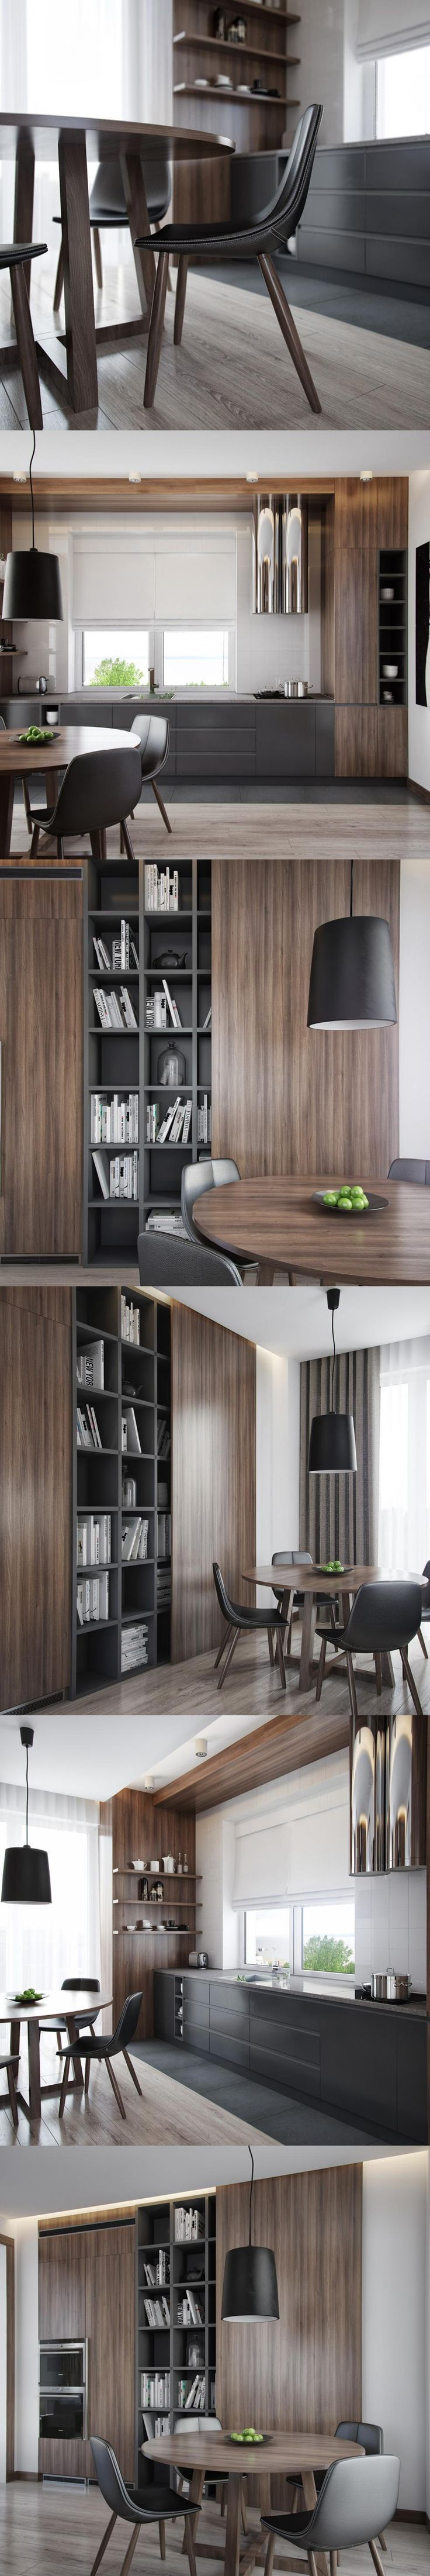 wood + grey interior